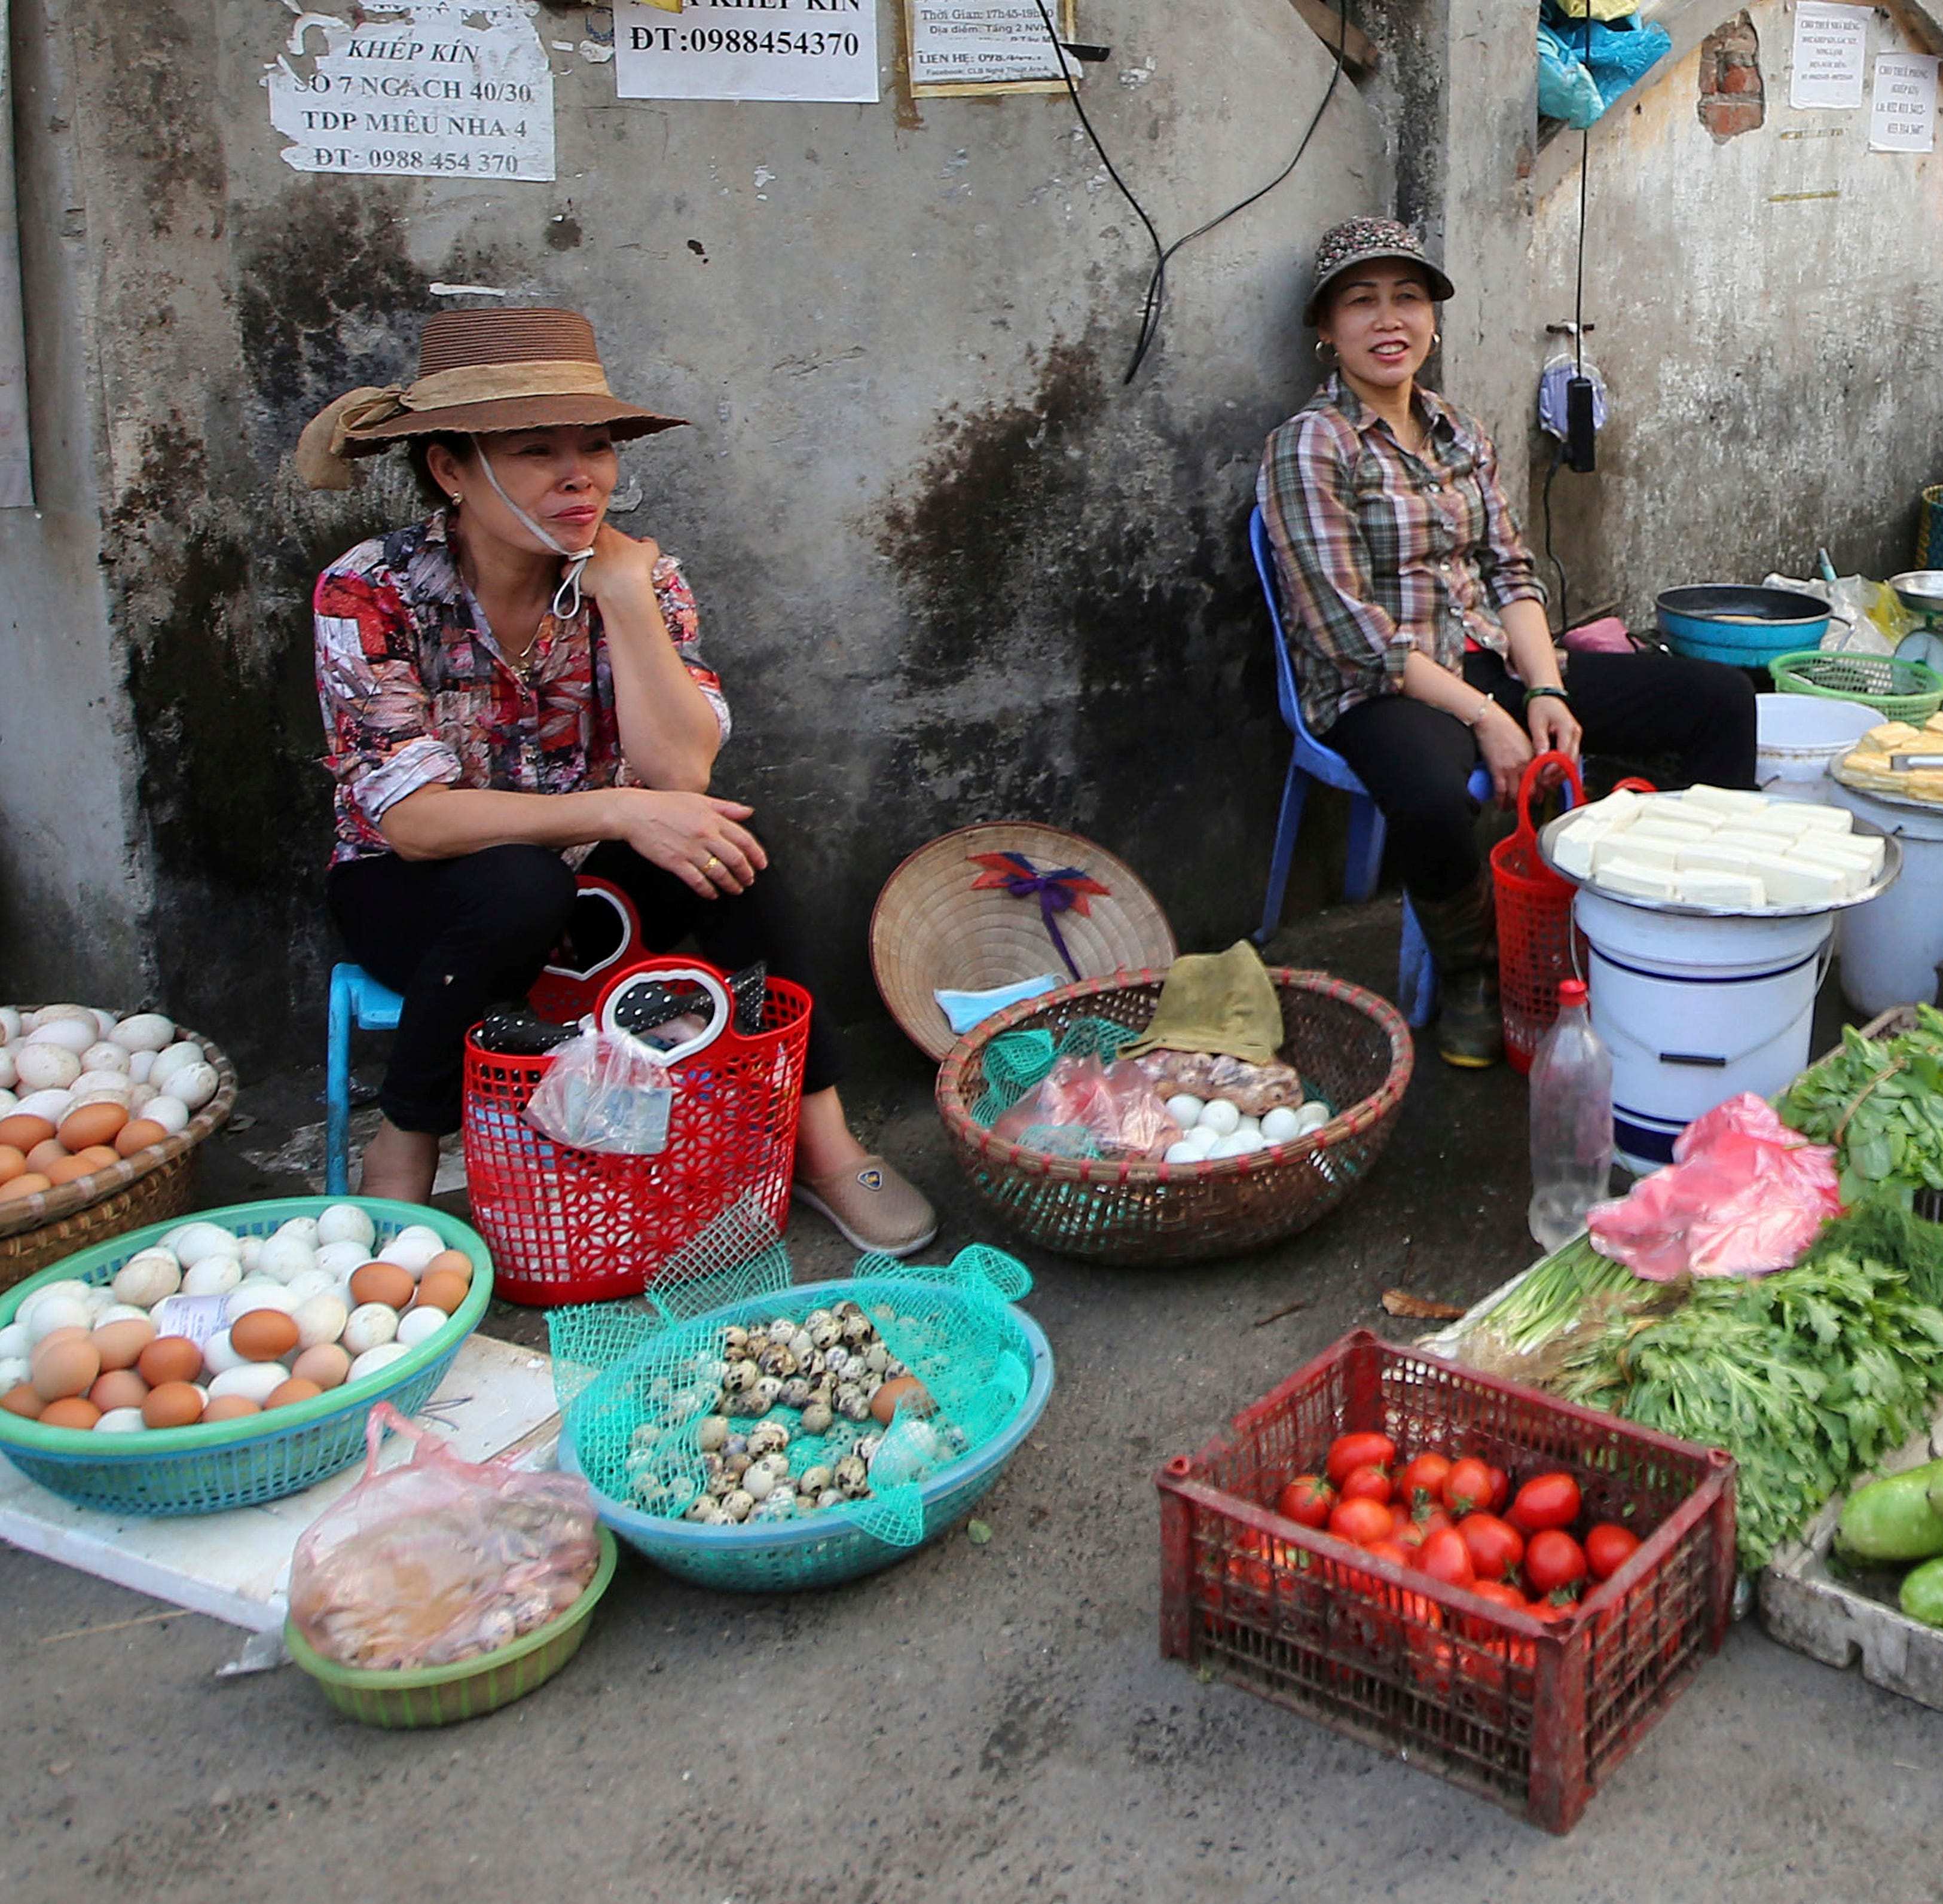 Finley: In Vietnam, capitalism creeps up on communism